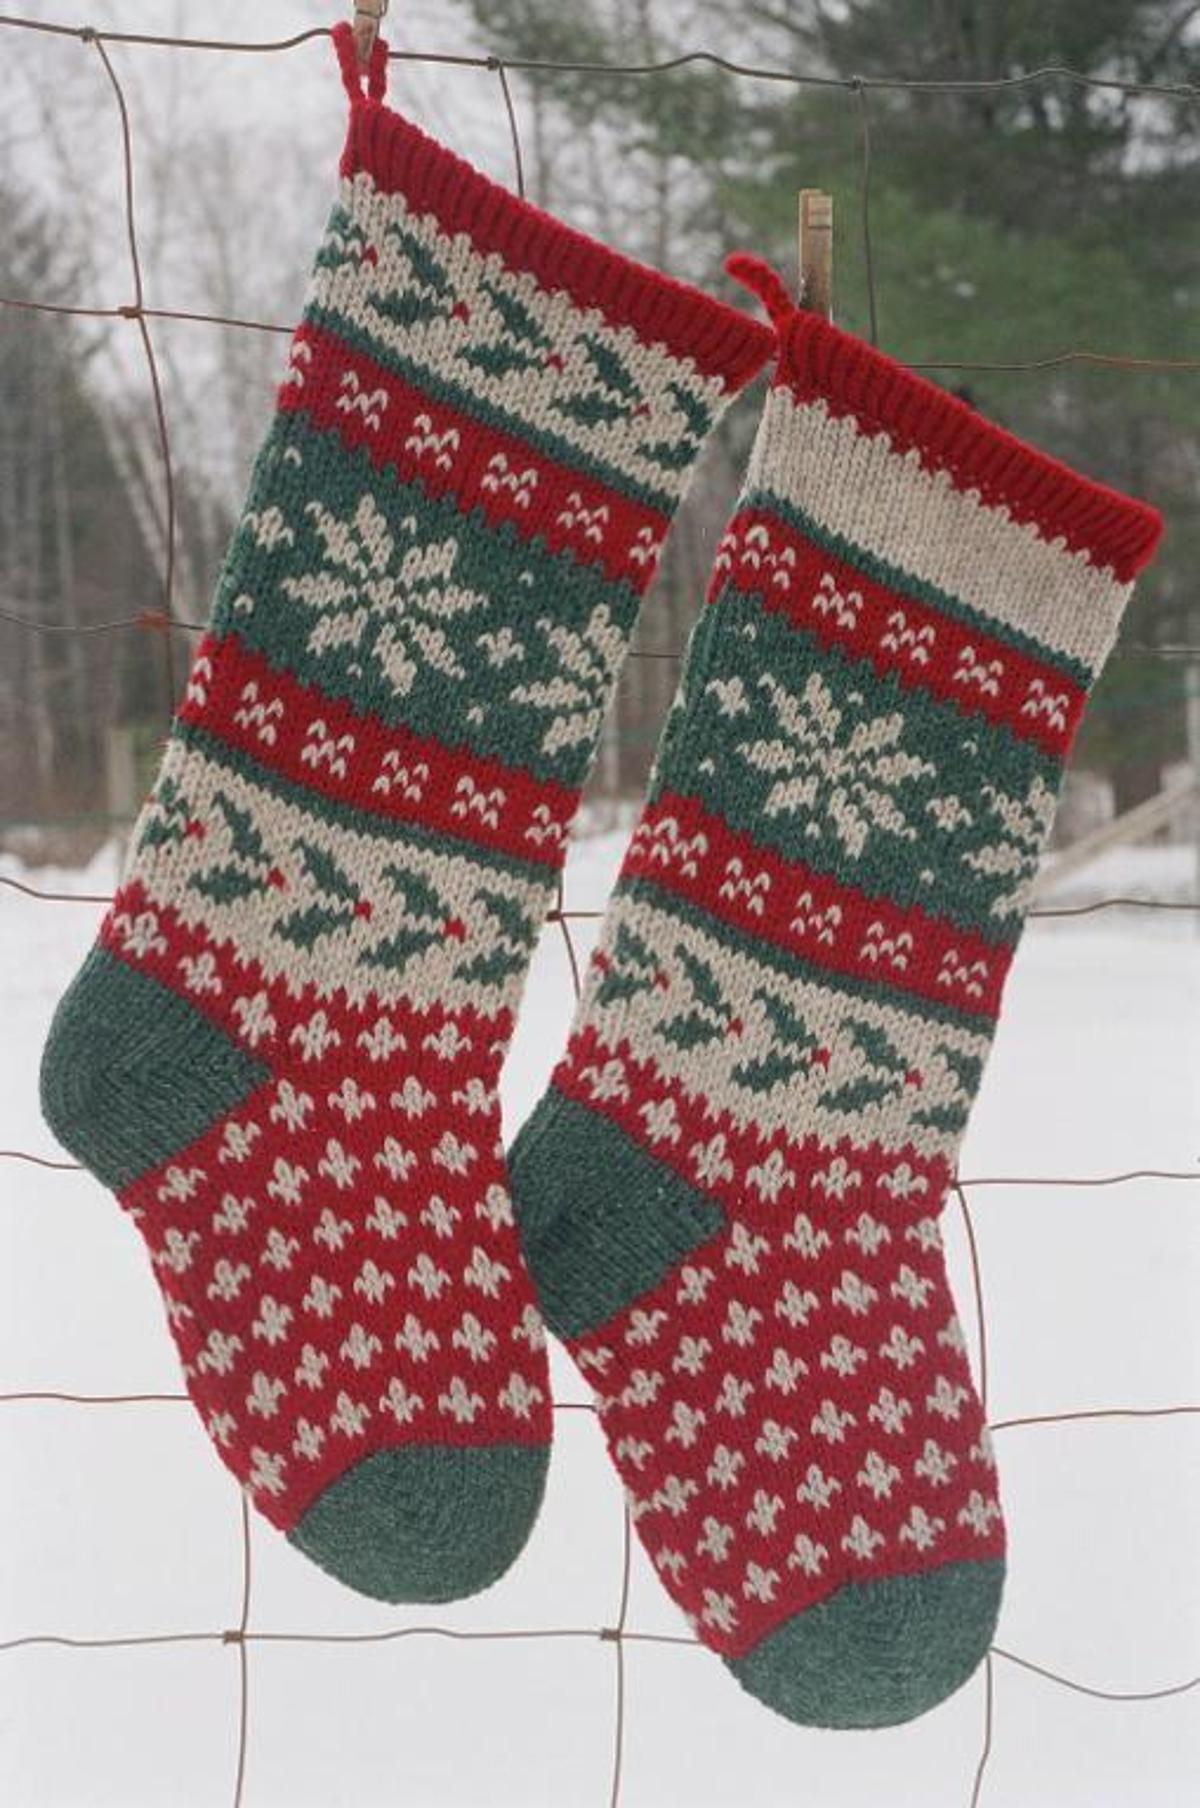 Christmas Stocking Knitting Patterns Knitted Christmas Stocking Patterns For Real Christmas Feel